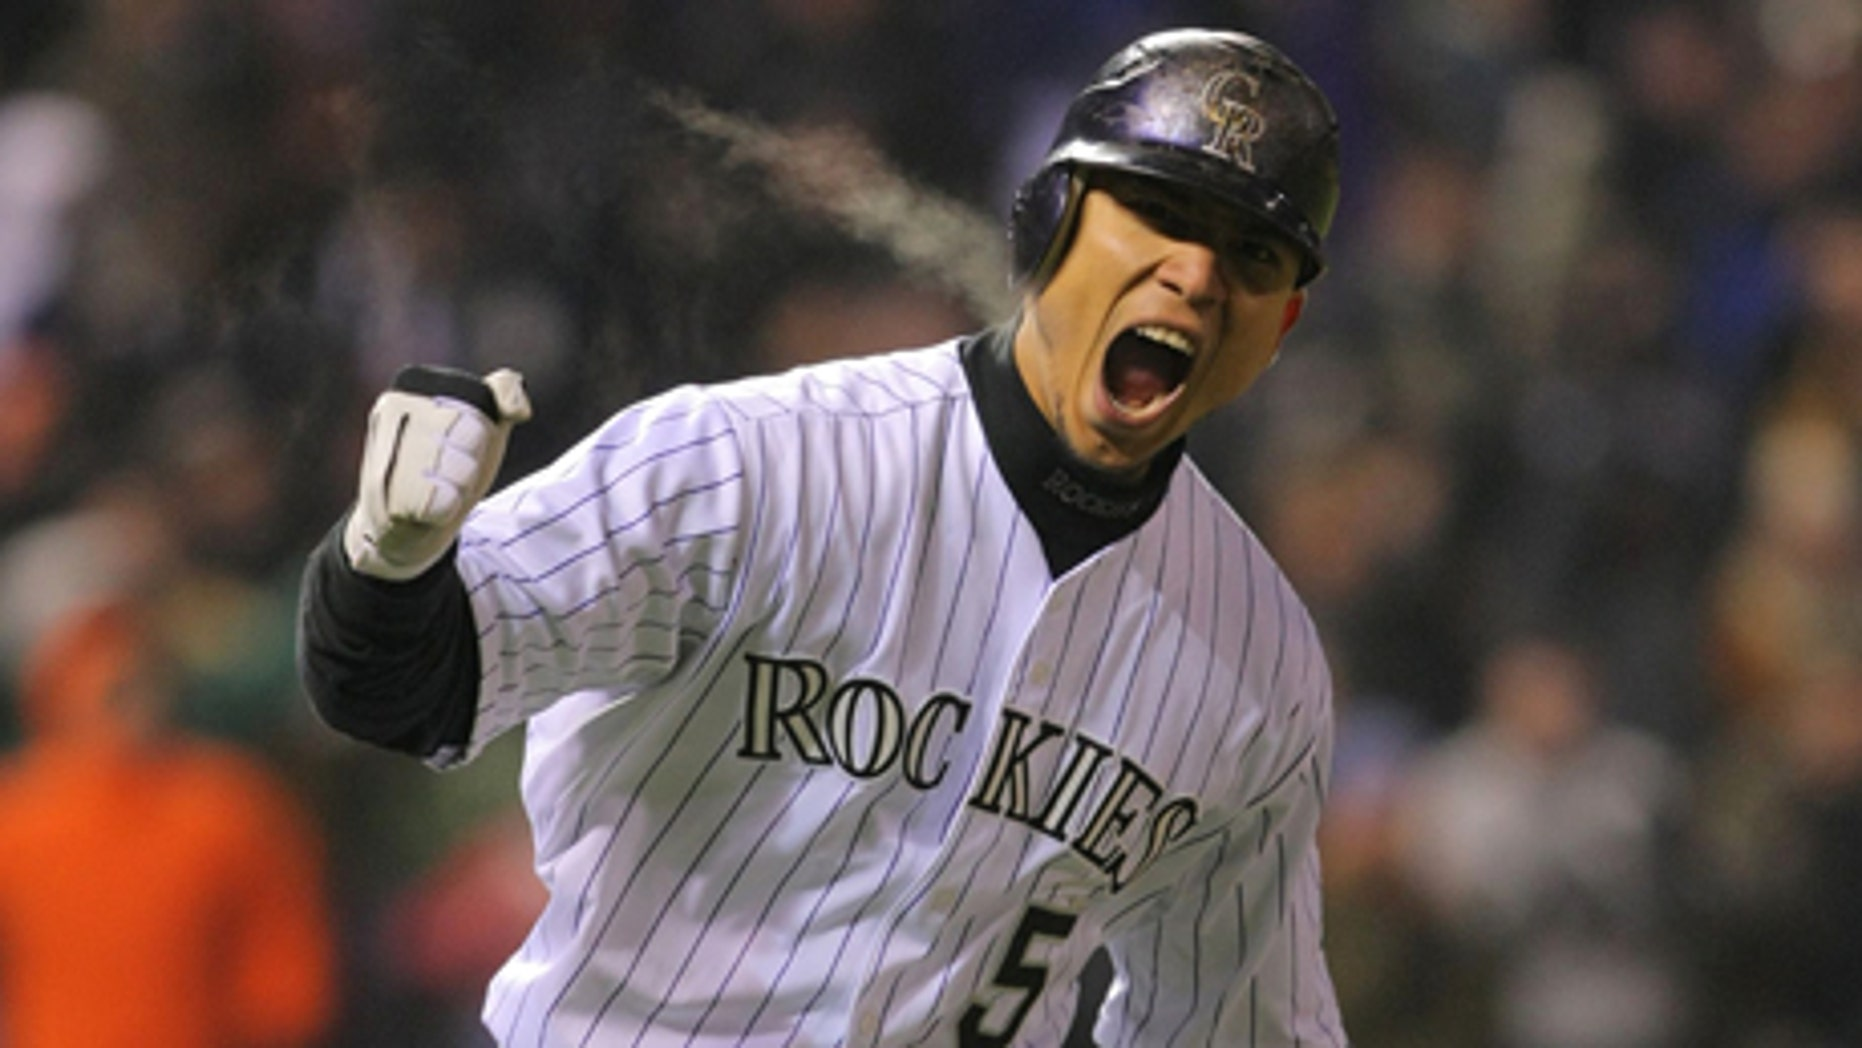 DENVER - OCTOBER 11:  Carlos Gonzalez #5 of the Colorado Rockies reacts after hitting a home run in the bottom of the fourth inning against the Philadelphia Phillies in Game Three of the NLDS during the 2009 MLB Playoffs at Coors Field on October 11, 2009 in Denver, Colorado.  (Photo by Doug Pensinger/ Getty Images)